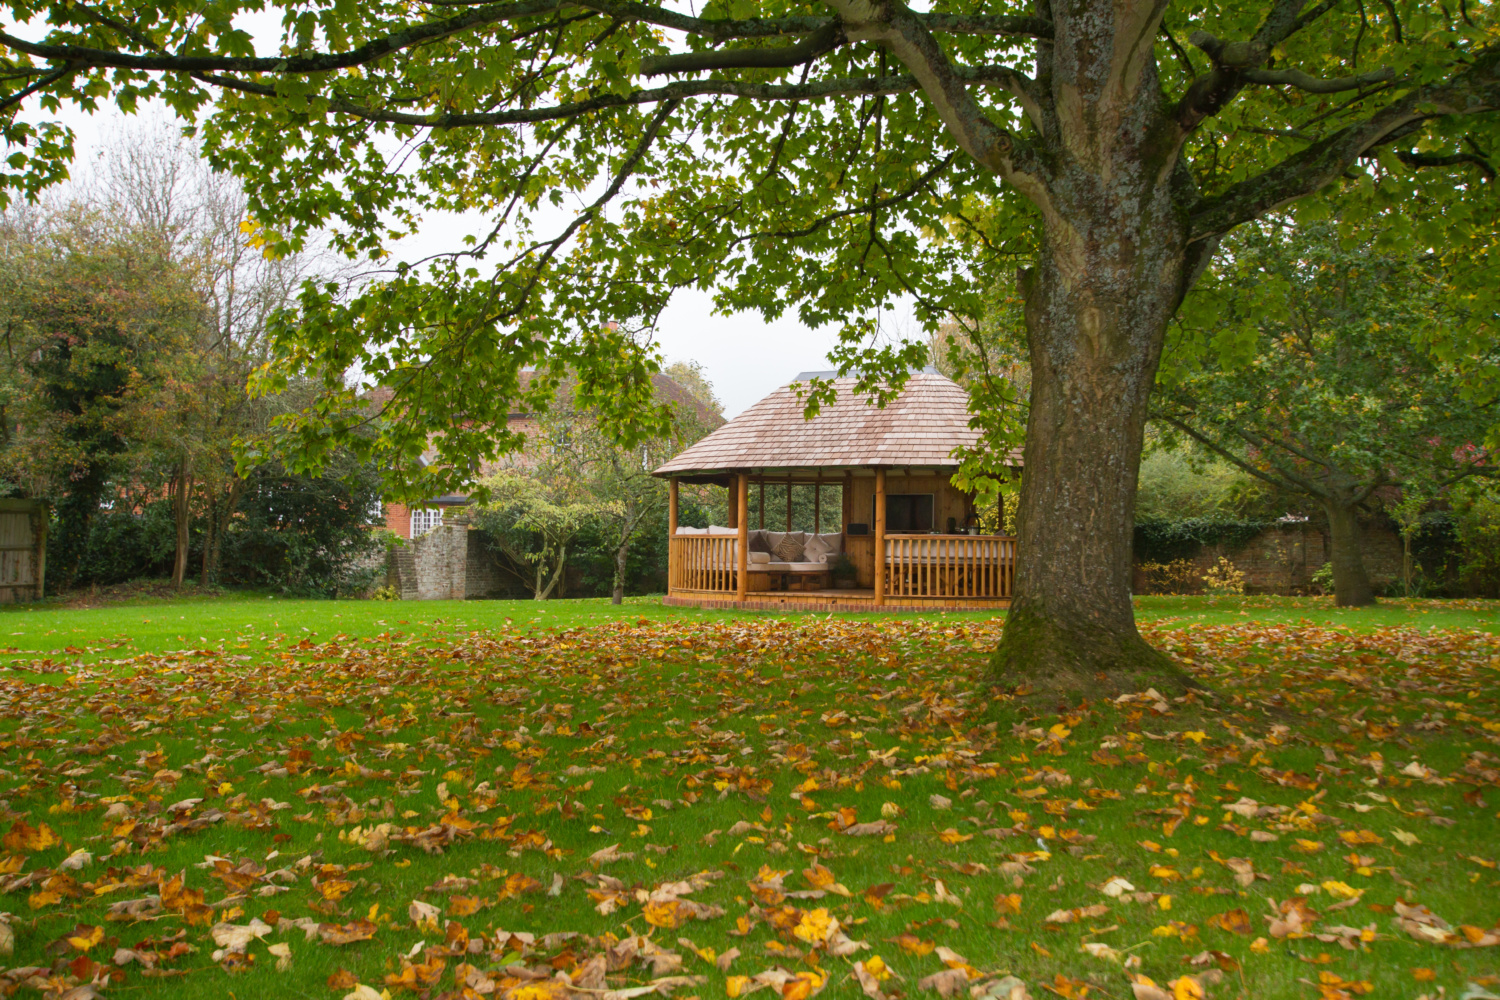 Opensided luxury gazebo in autumn garden